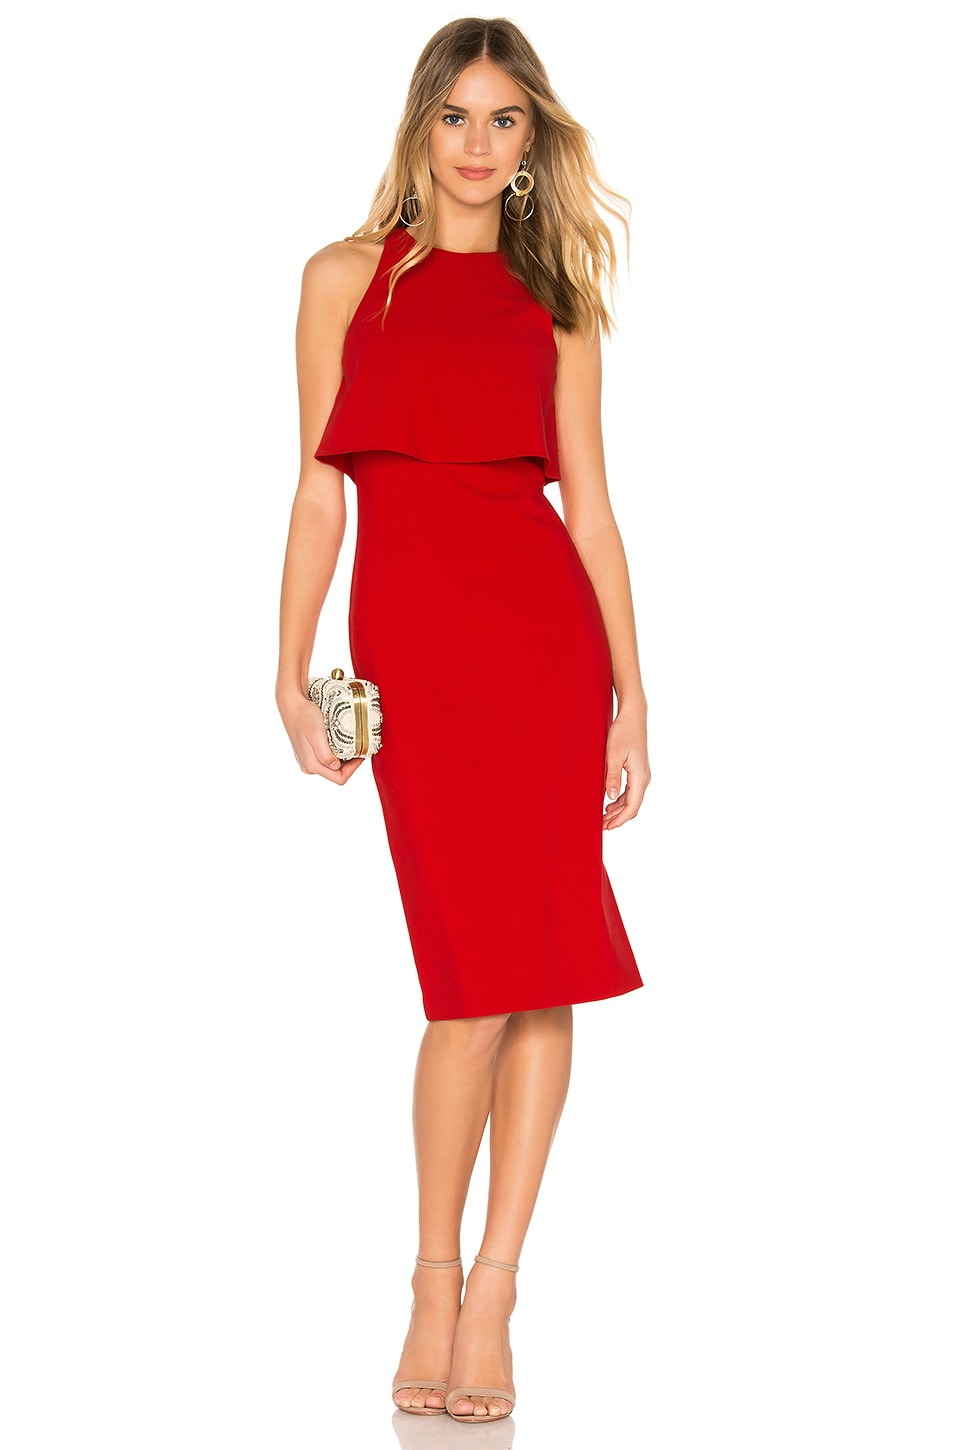 LIKELY Shayna Dress in Scarlet